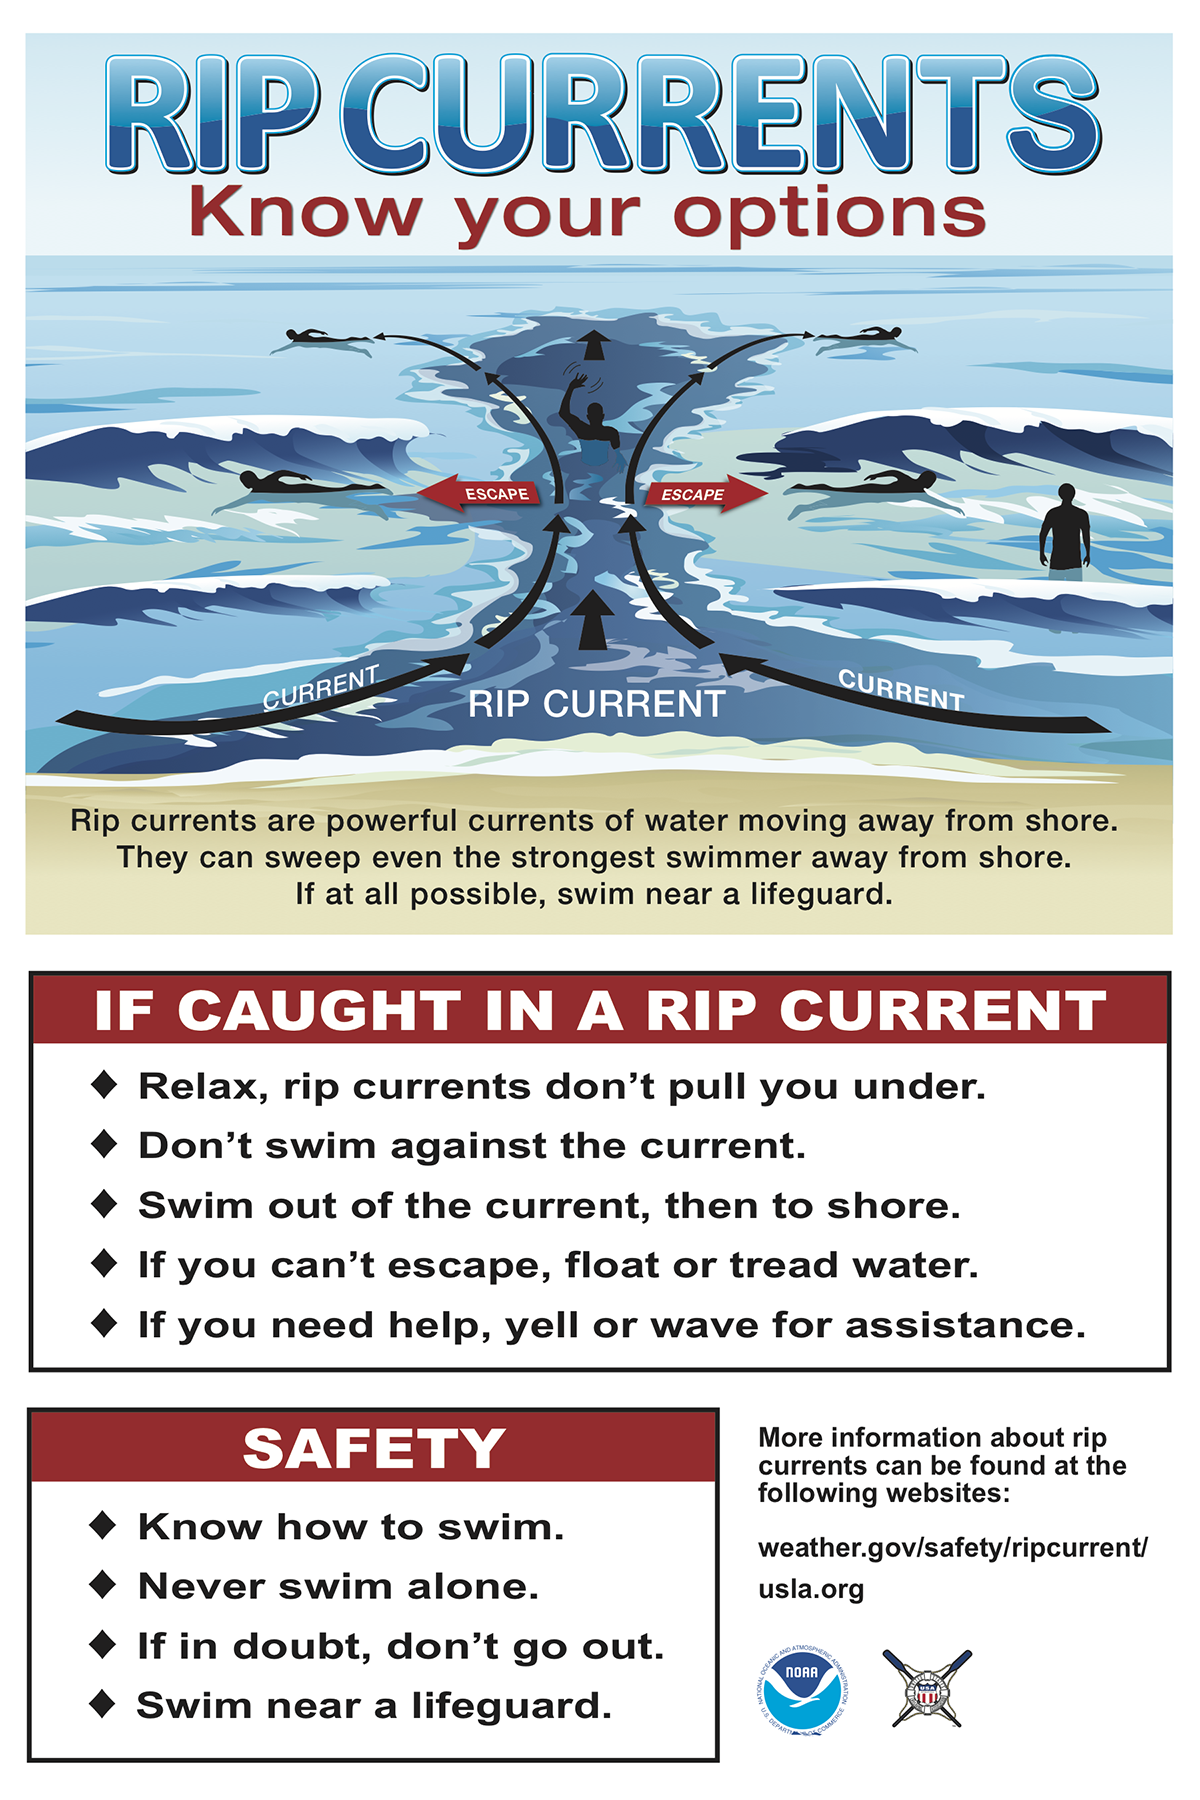 This rip current sign provides guidance on swimming safety. It advises swimmers caught in rip currents to 1) relax, because rip currents don't pull you under; 2) not swim against the current; 3) swim out of the current, then to shore; 4) float or tread water if they can't escape; 5) yell or wave for assistance if they need help.